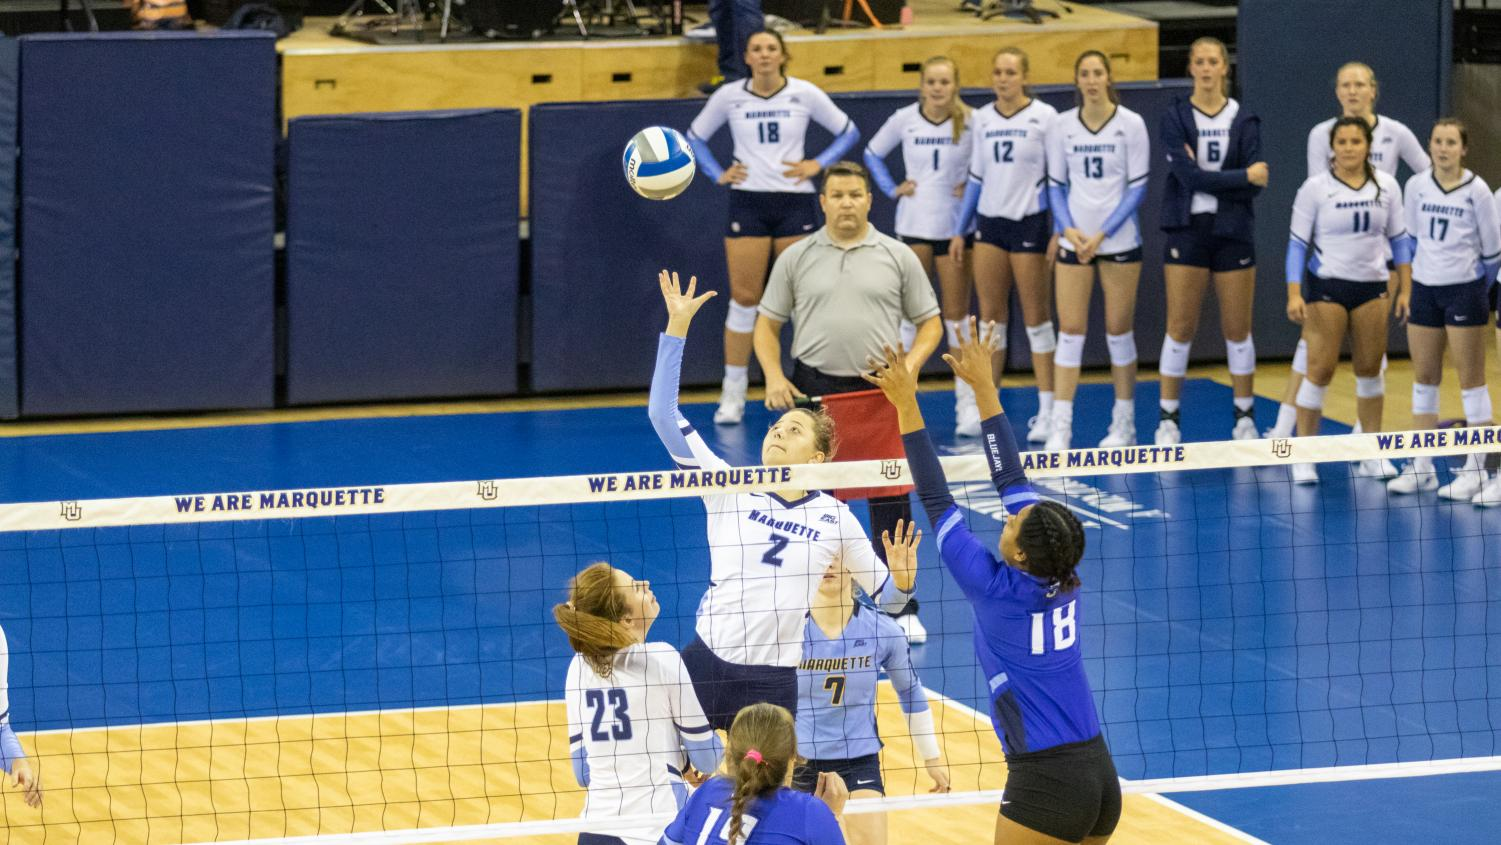 Hannah Vanden Berg (2) attempts a kill against Creighton in MU's five-set loss at the Al McGuire Center.